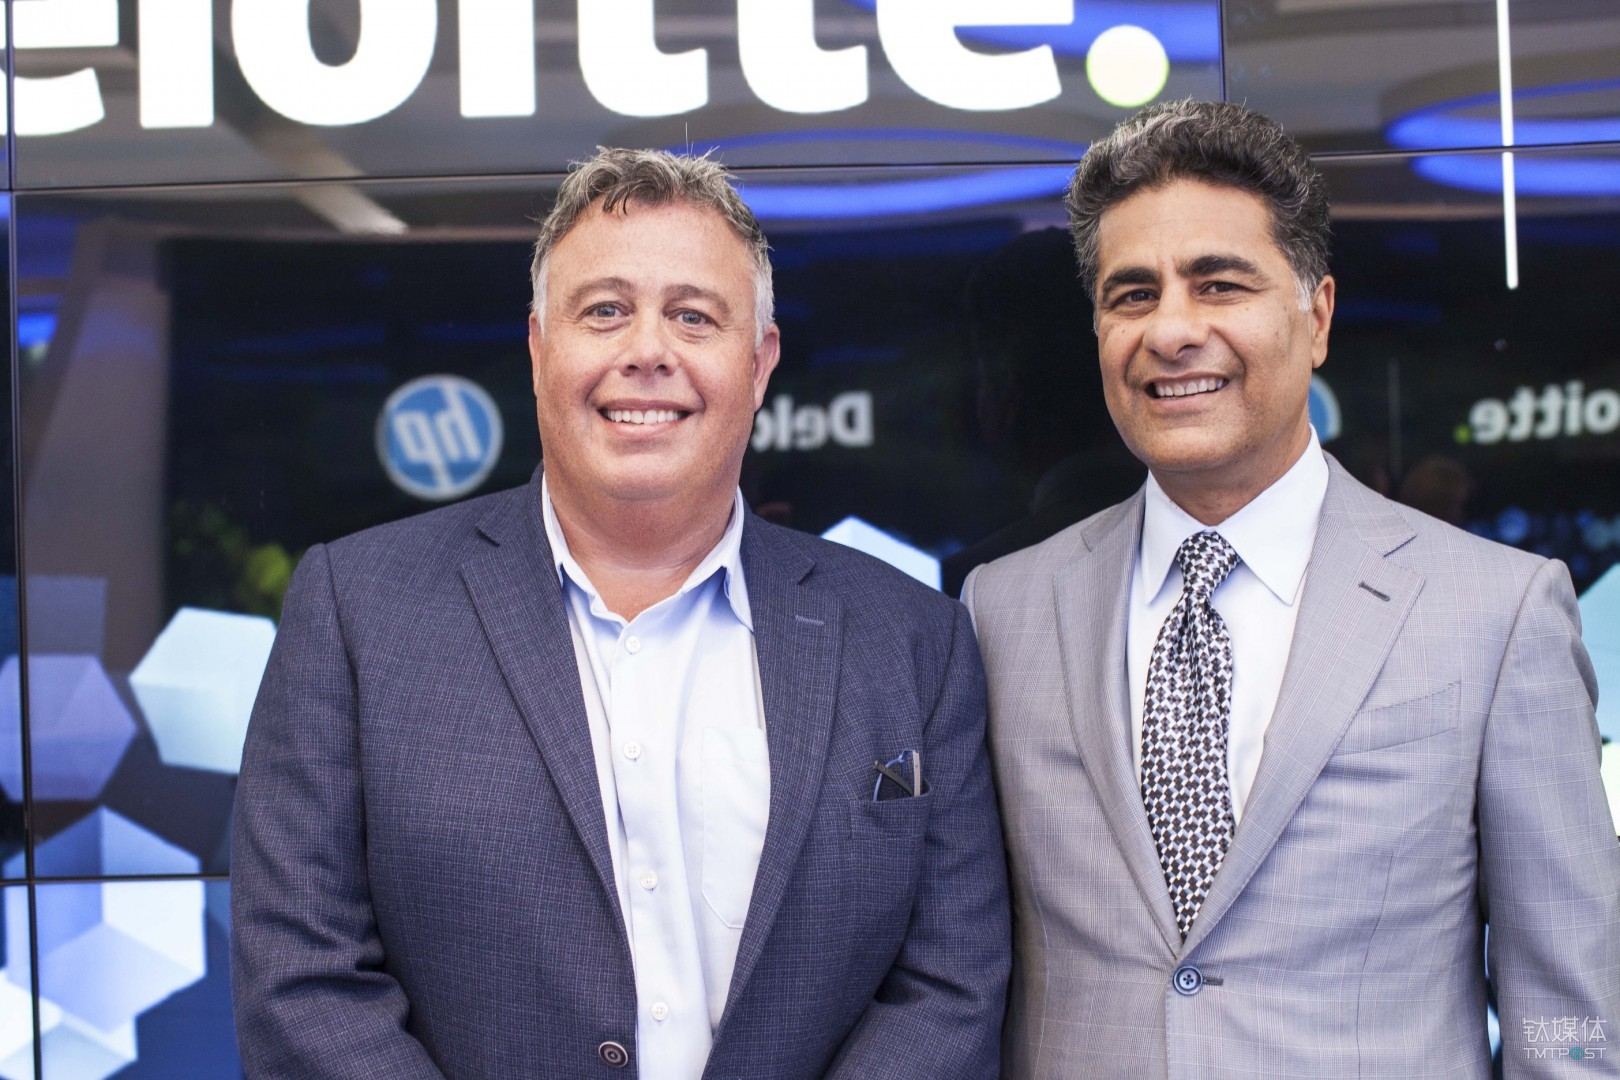 HP CEO Dion Weisler CEO Punit Renjen Deloitte Global CEO